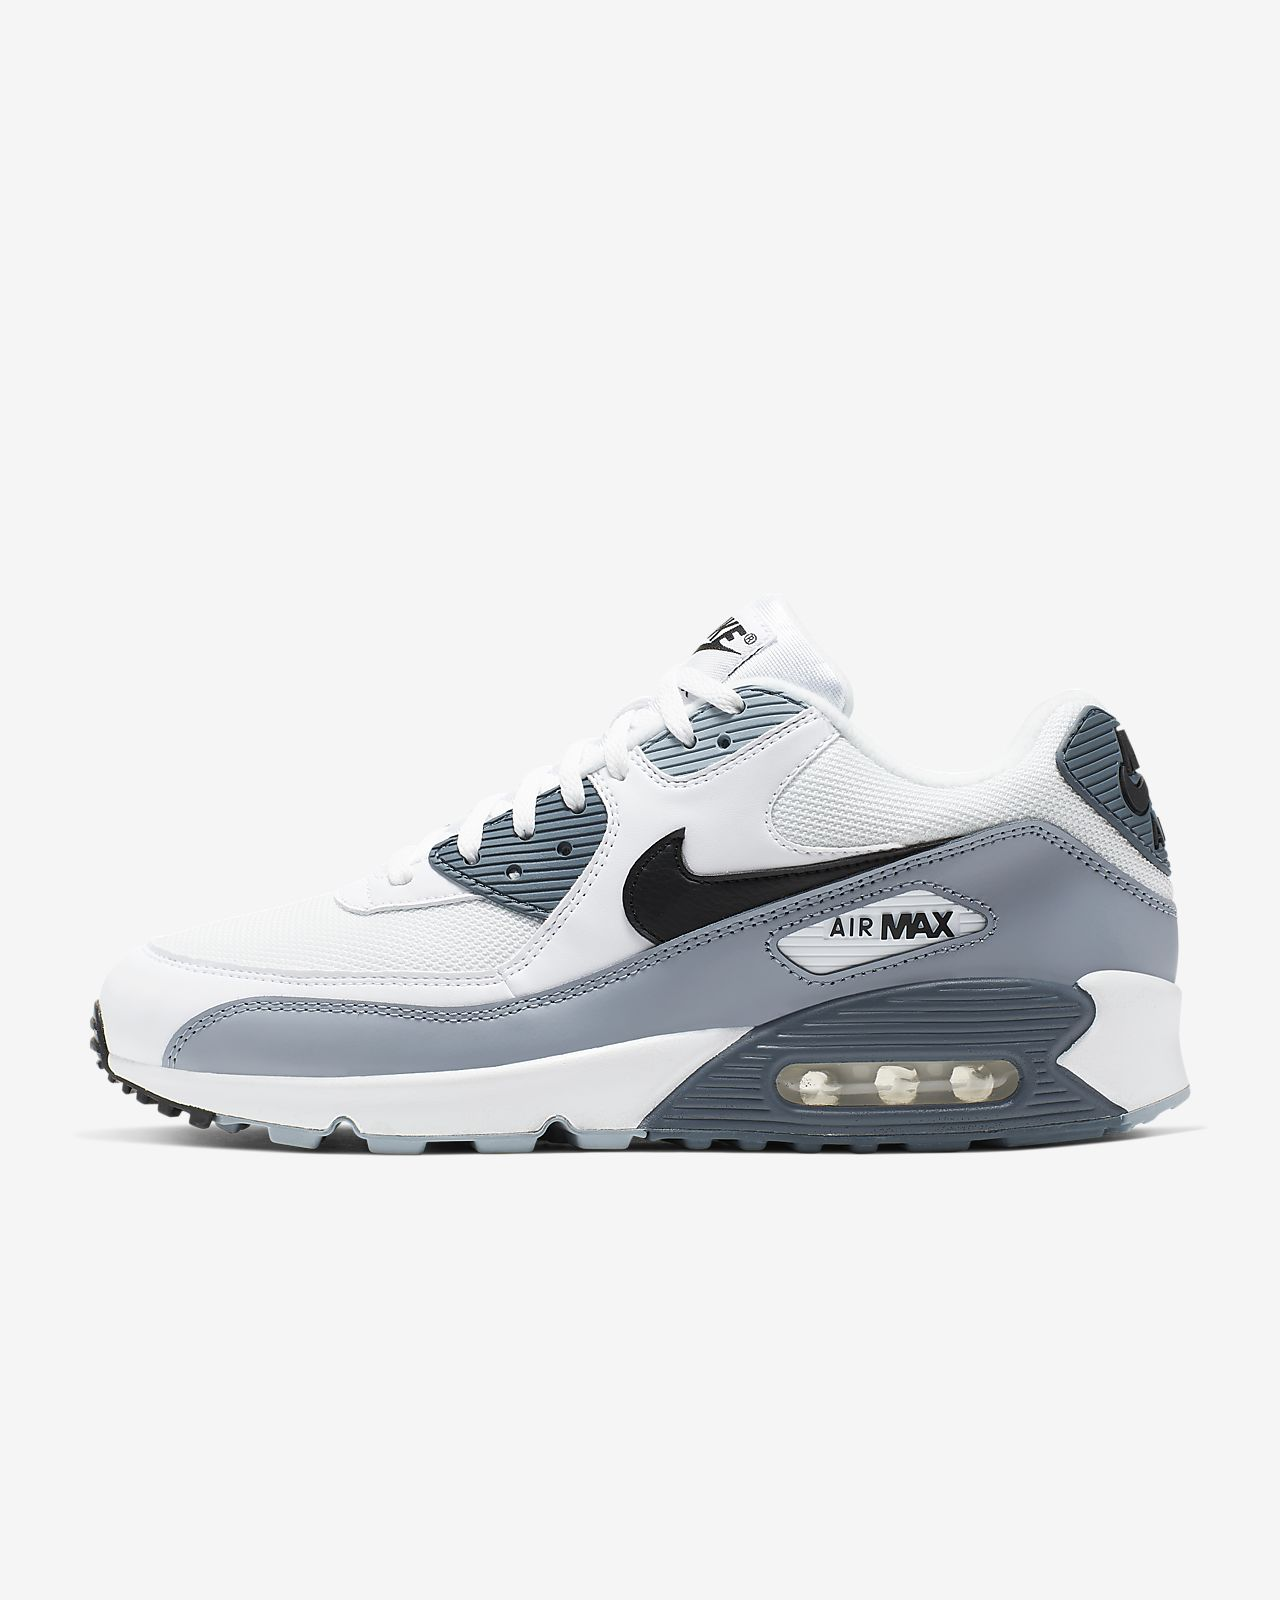 2c500499cb0d Low Resolution Nike Air Max 90 Essential Men s Shoe Nike Air Max 90  Essential Men s Shoe